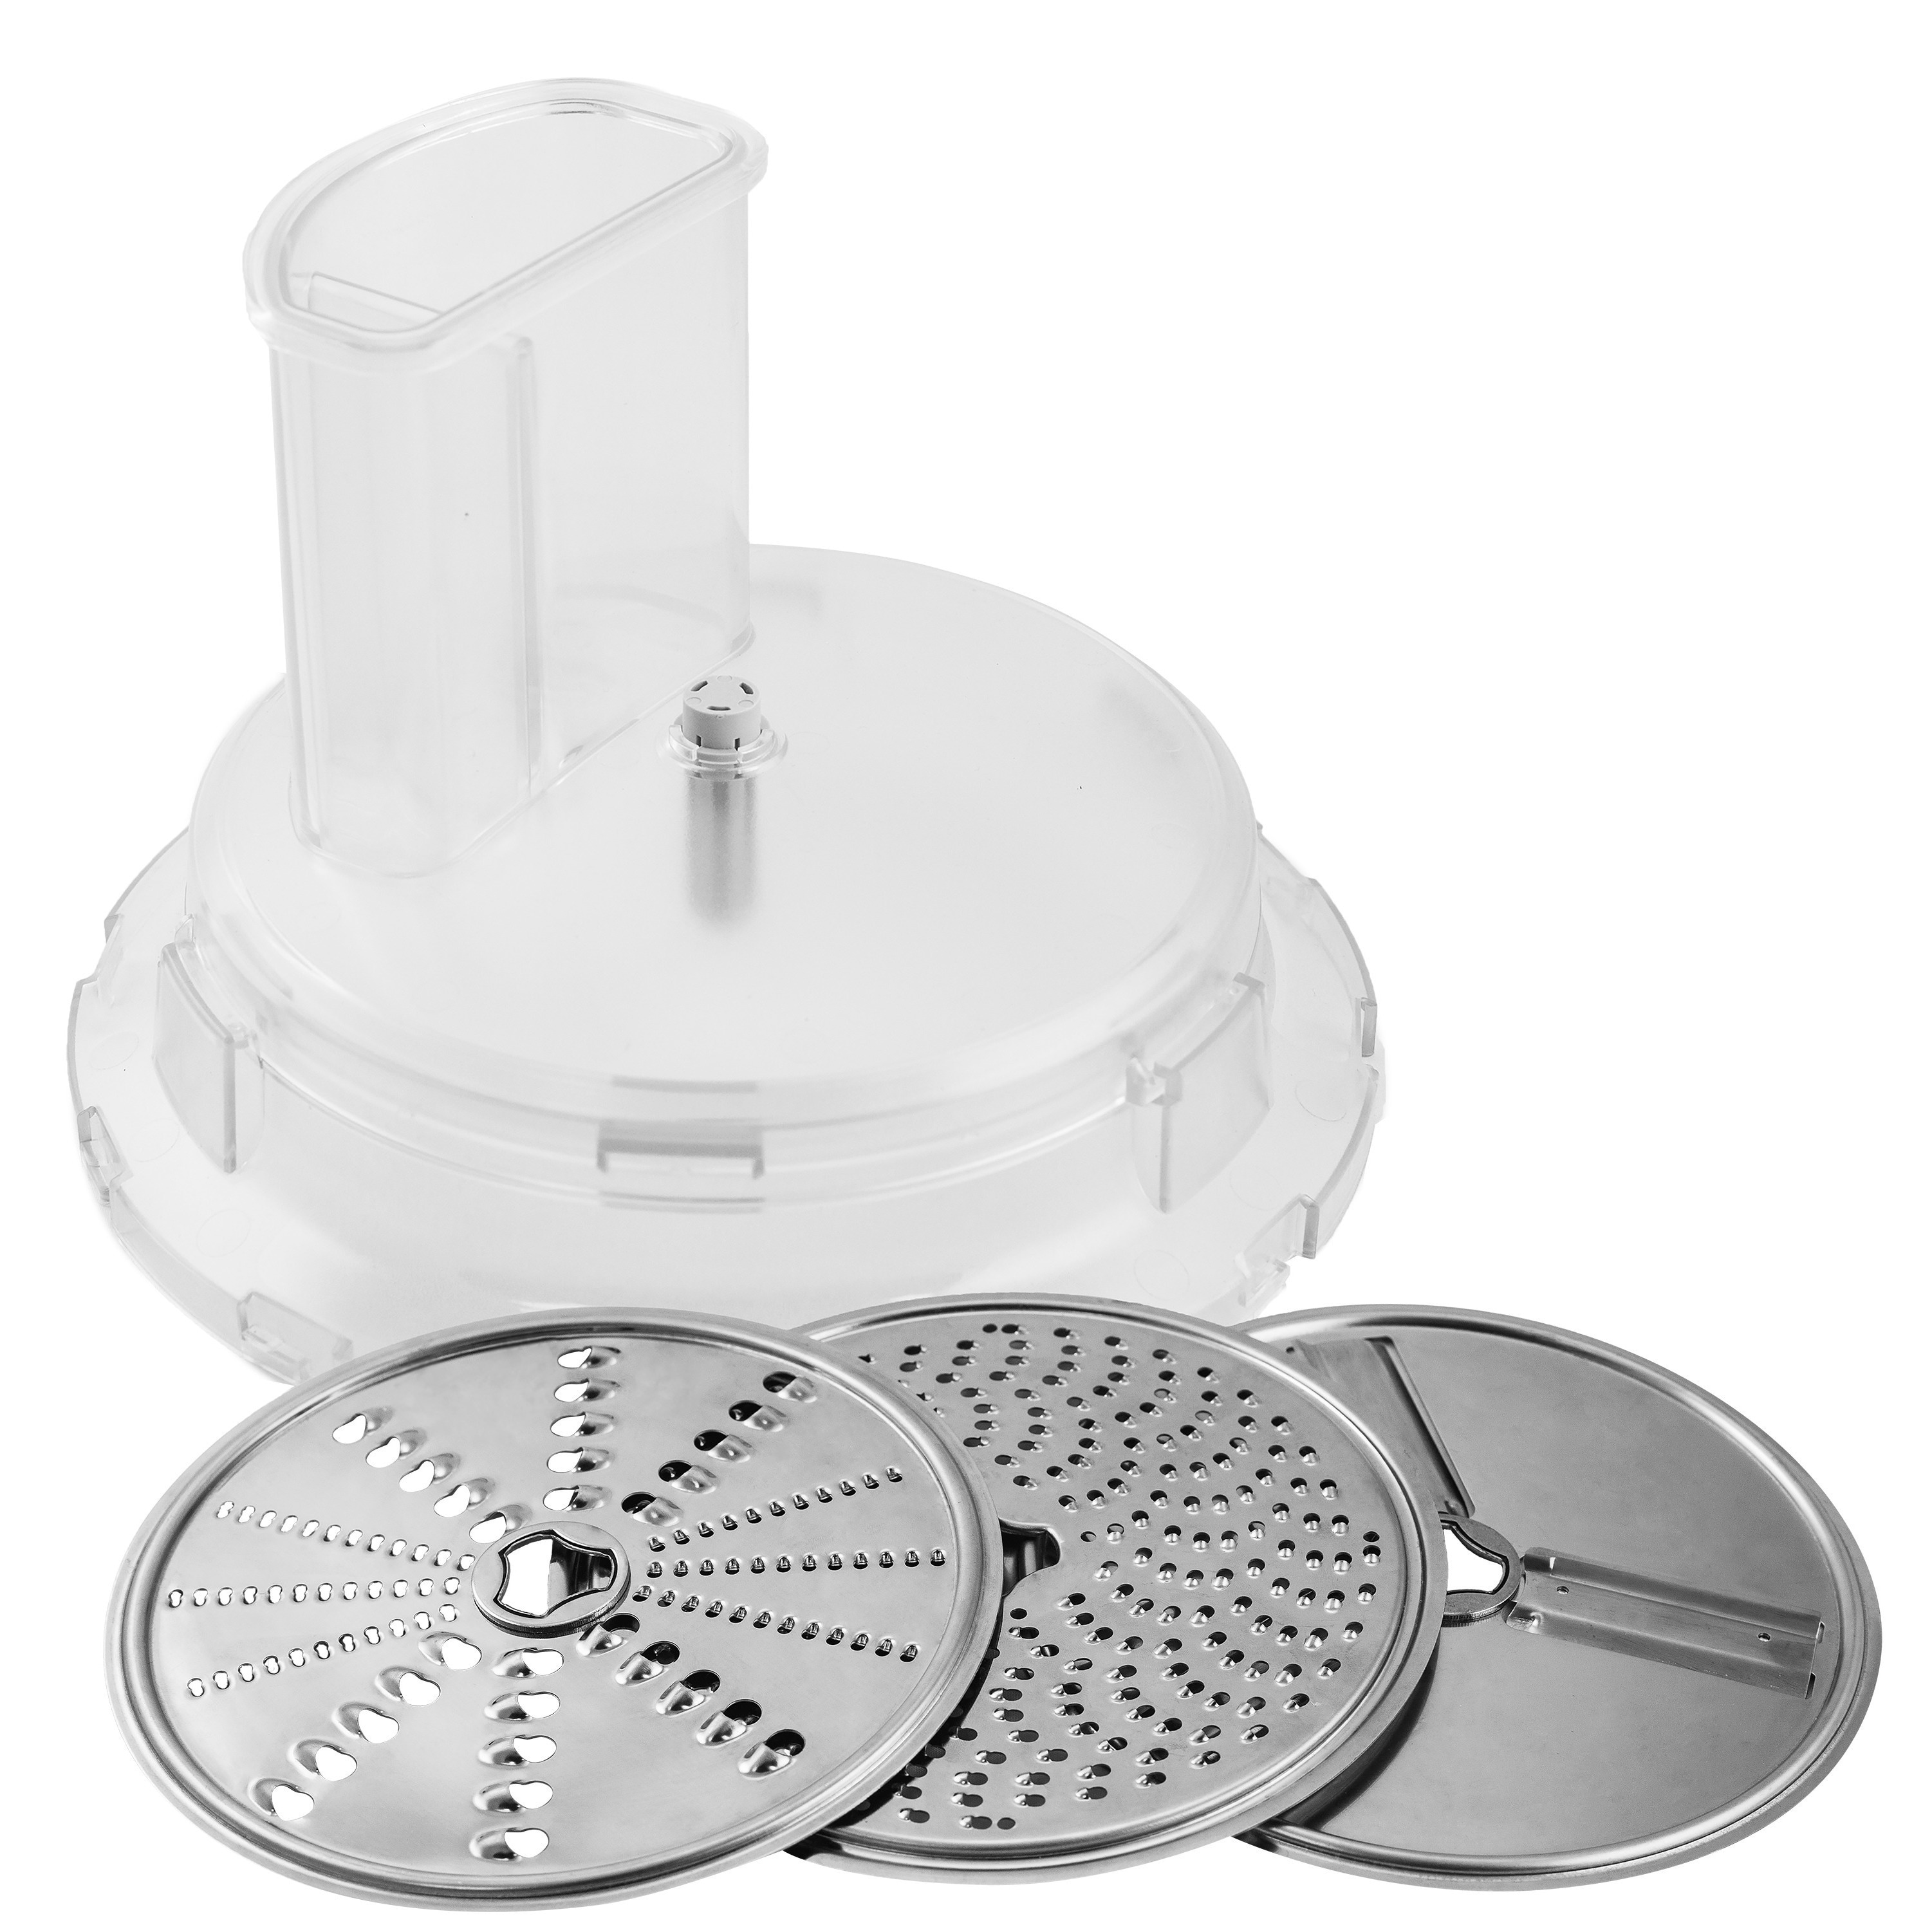 Chef Large Slicer Shredder Attachment for Bosch Mixers (W...